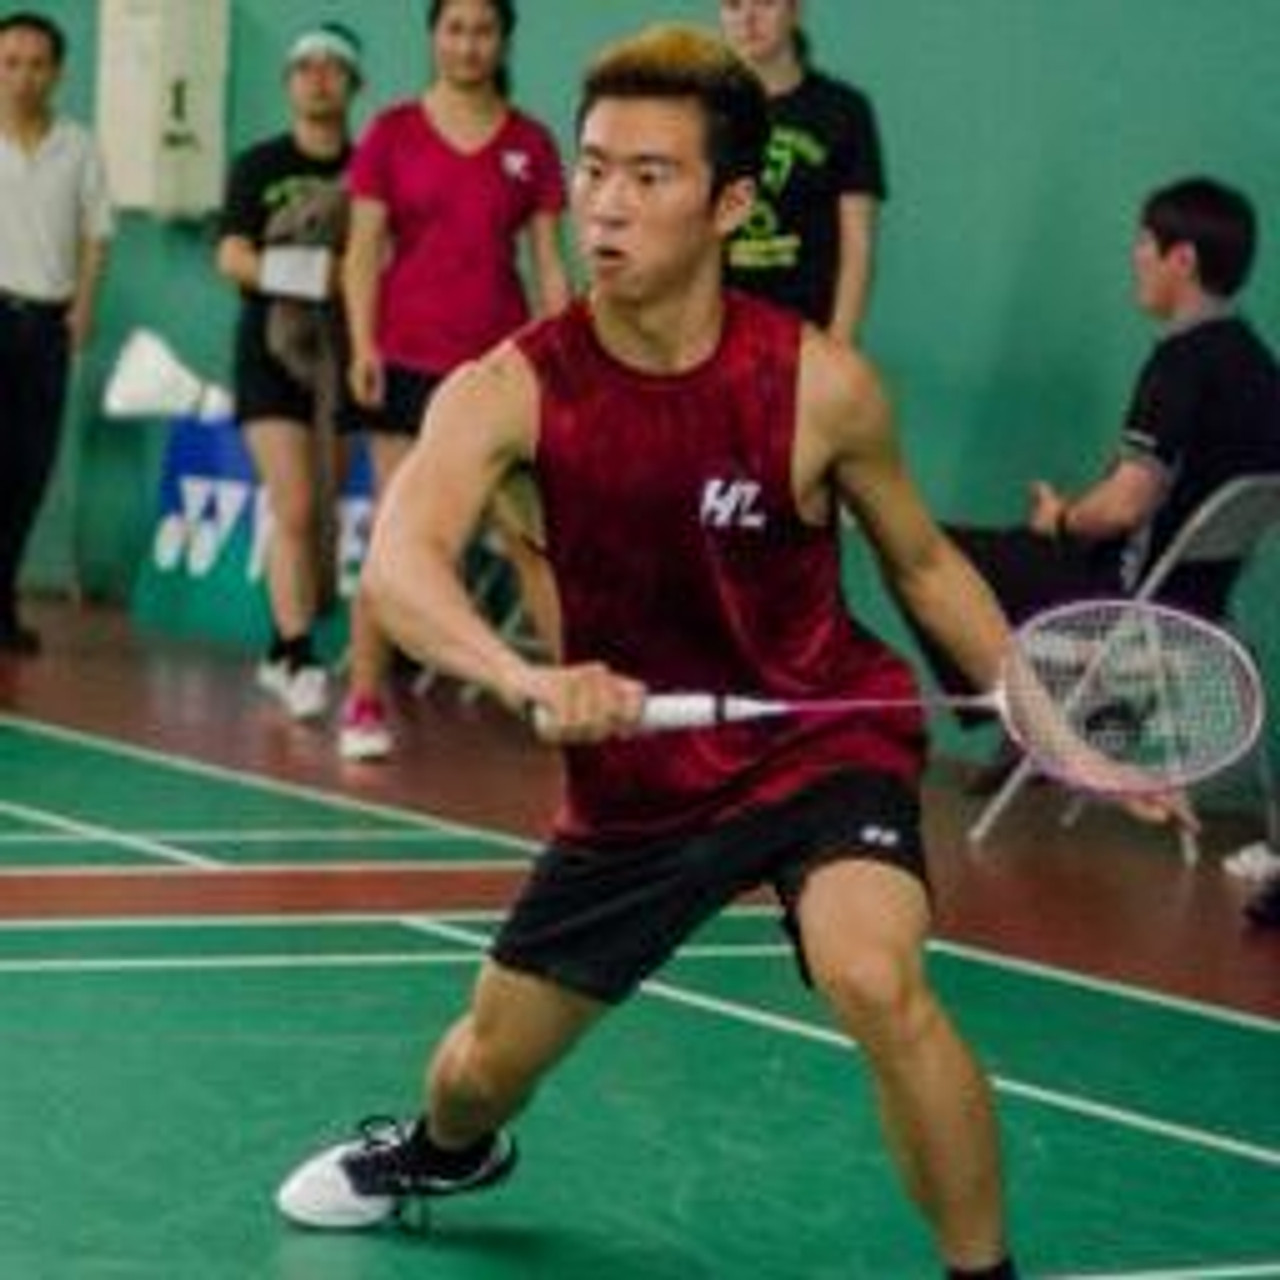 Shawn Whong 2015 USA Adult Nationals Men's Singles 4th Place.